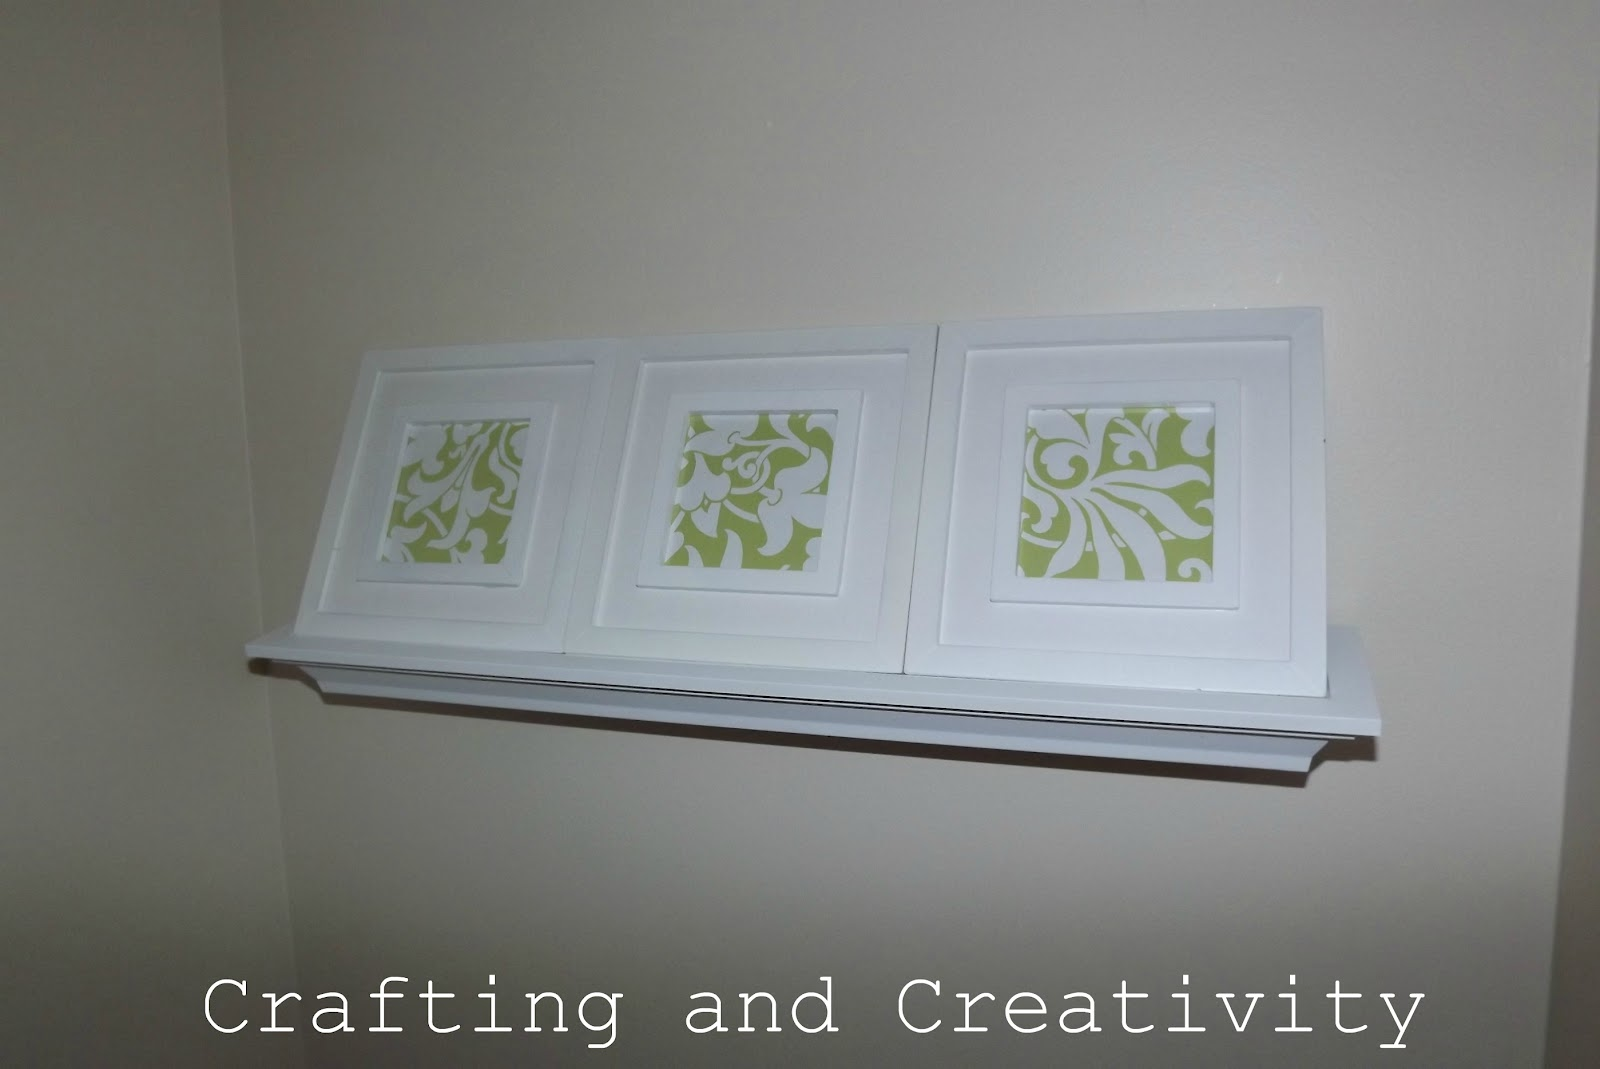 Affordable Wall Art Cool Crafting And Creativity Cheap Wall Art Design Ideas